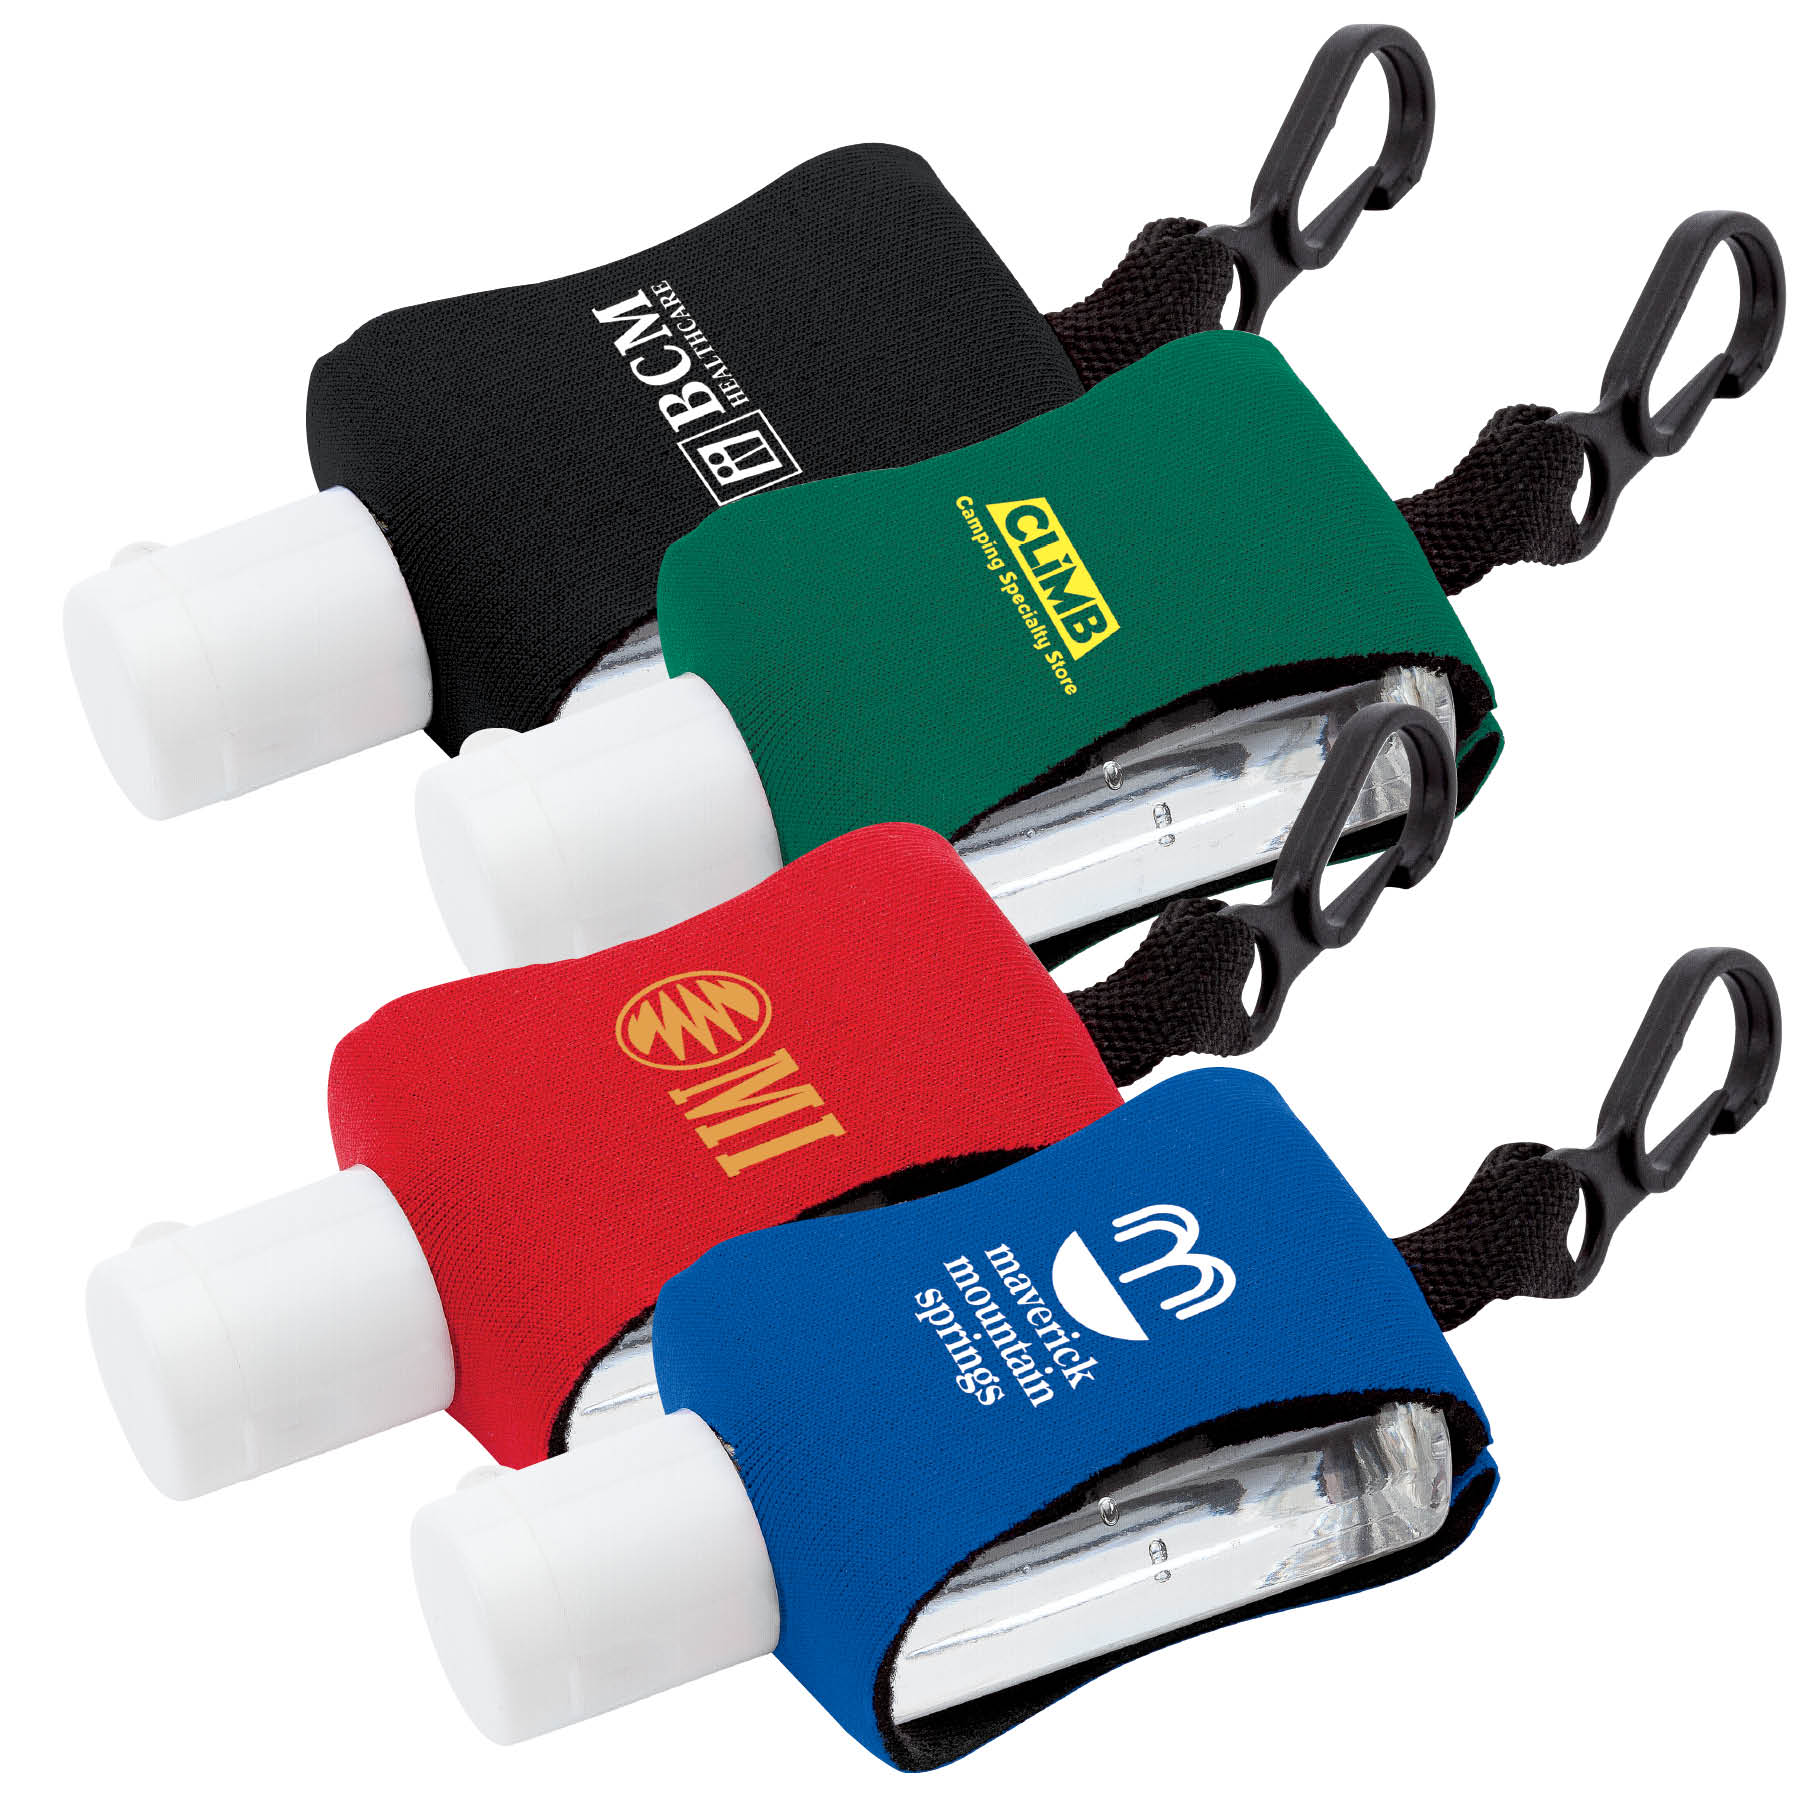 0.5 oz. Hand Sanitizer Bottle with Neoprene Sleeve